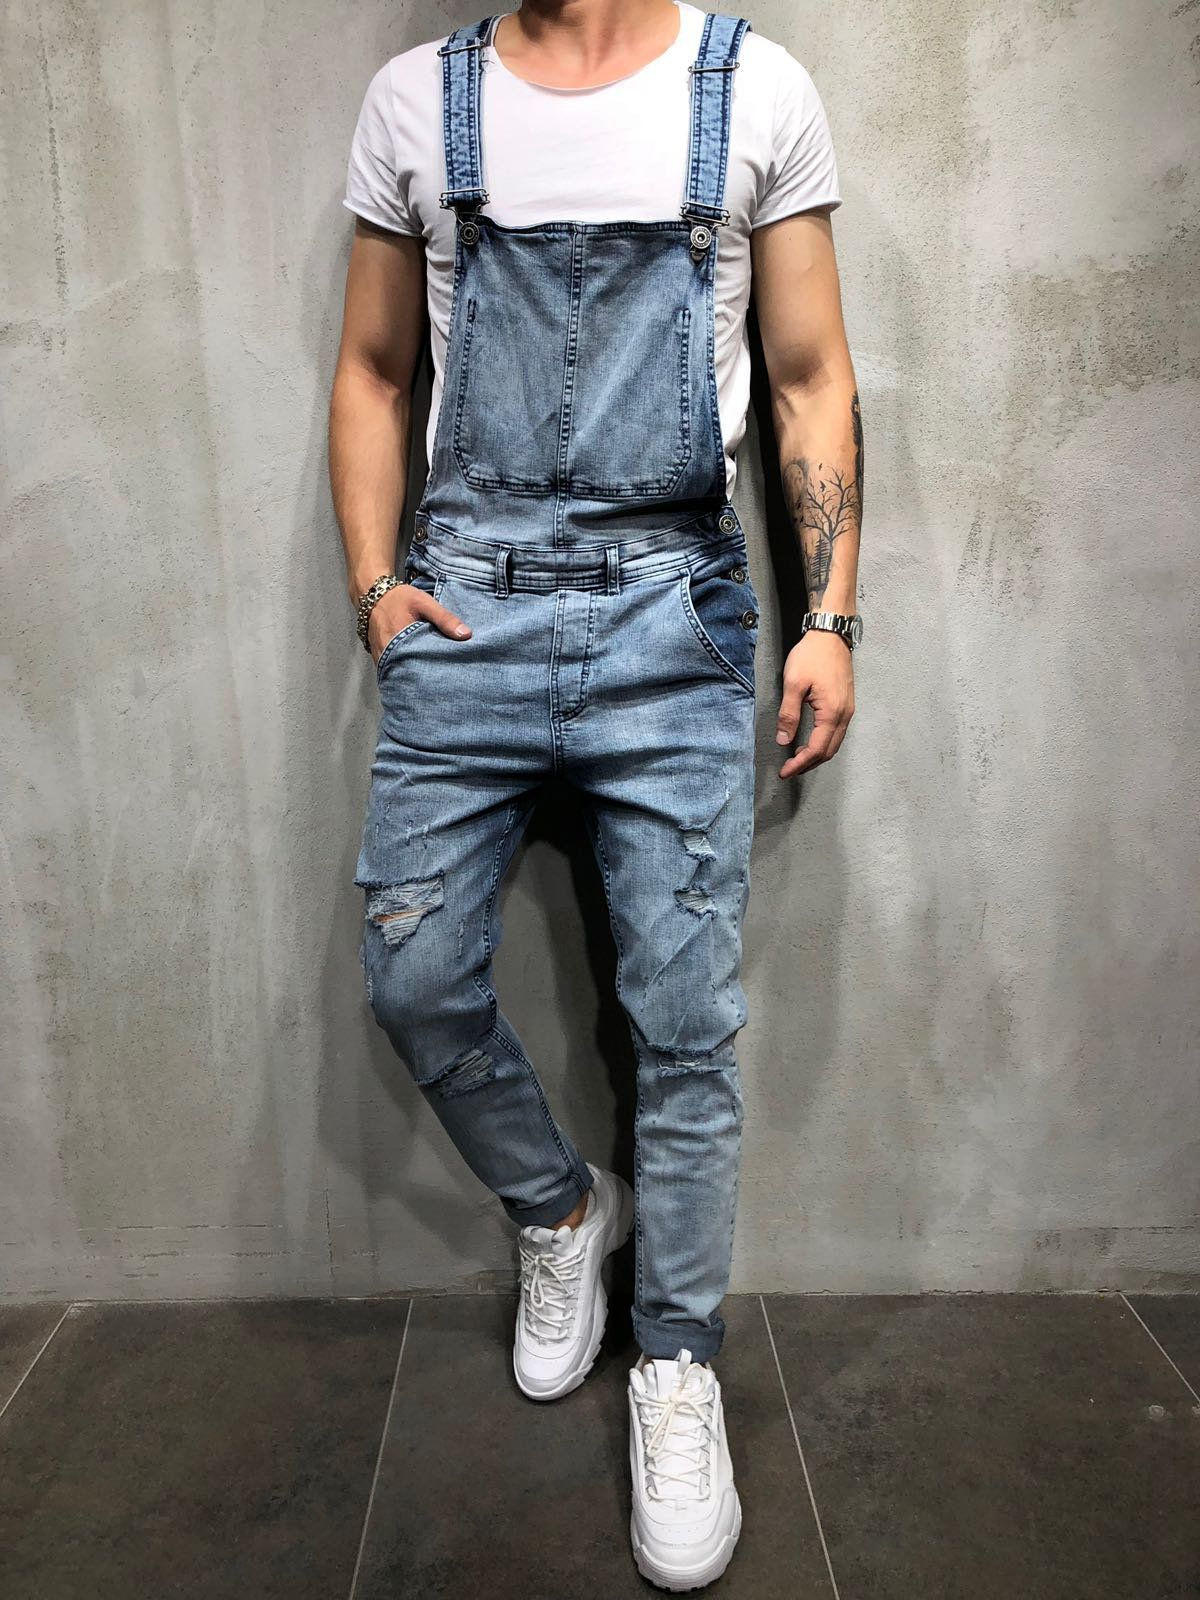 Men Denim Overall Bib Jumper Jeans - Blue 3884 | Men ...